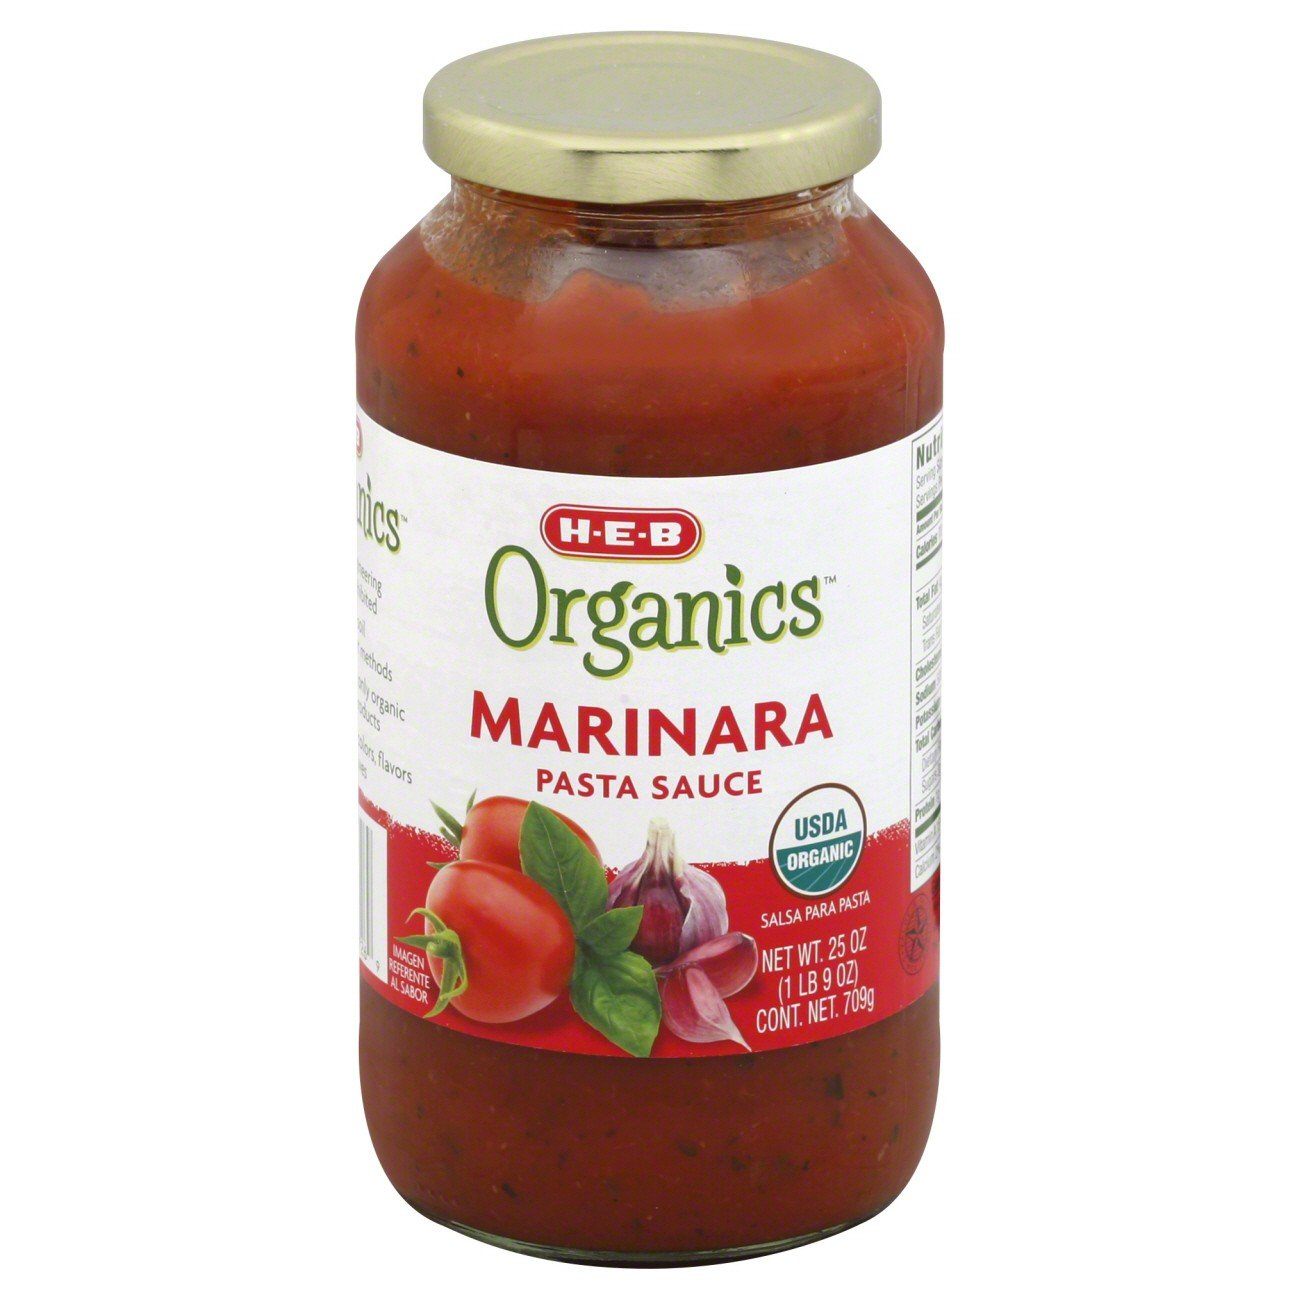 Organics Marinara Pasta Sauce 25 OZ (Pack of 9) + (6 Pack of M&M Milk Chocolate 1.69oz): Amazon.com: Grocery & Gourmet Food